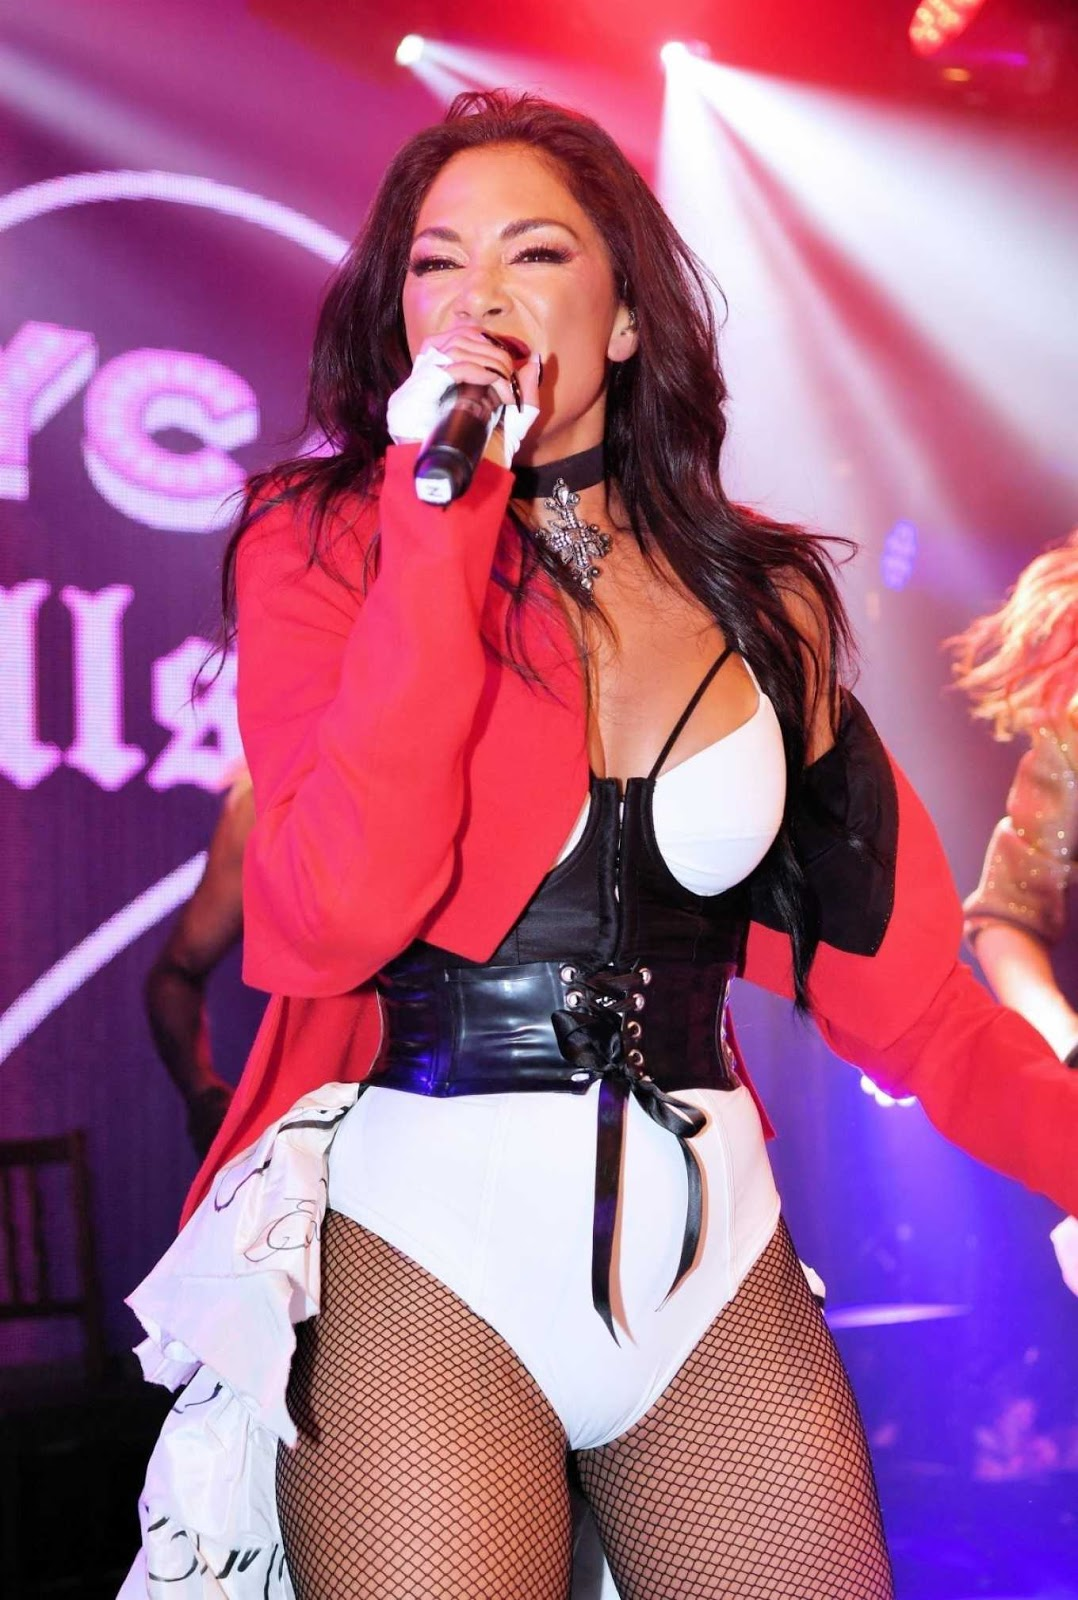 The Pussycat Dolls Hottest Performance